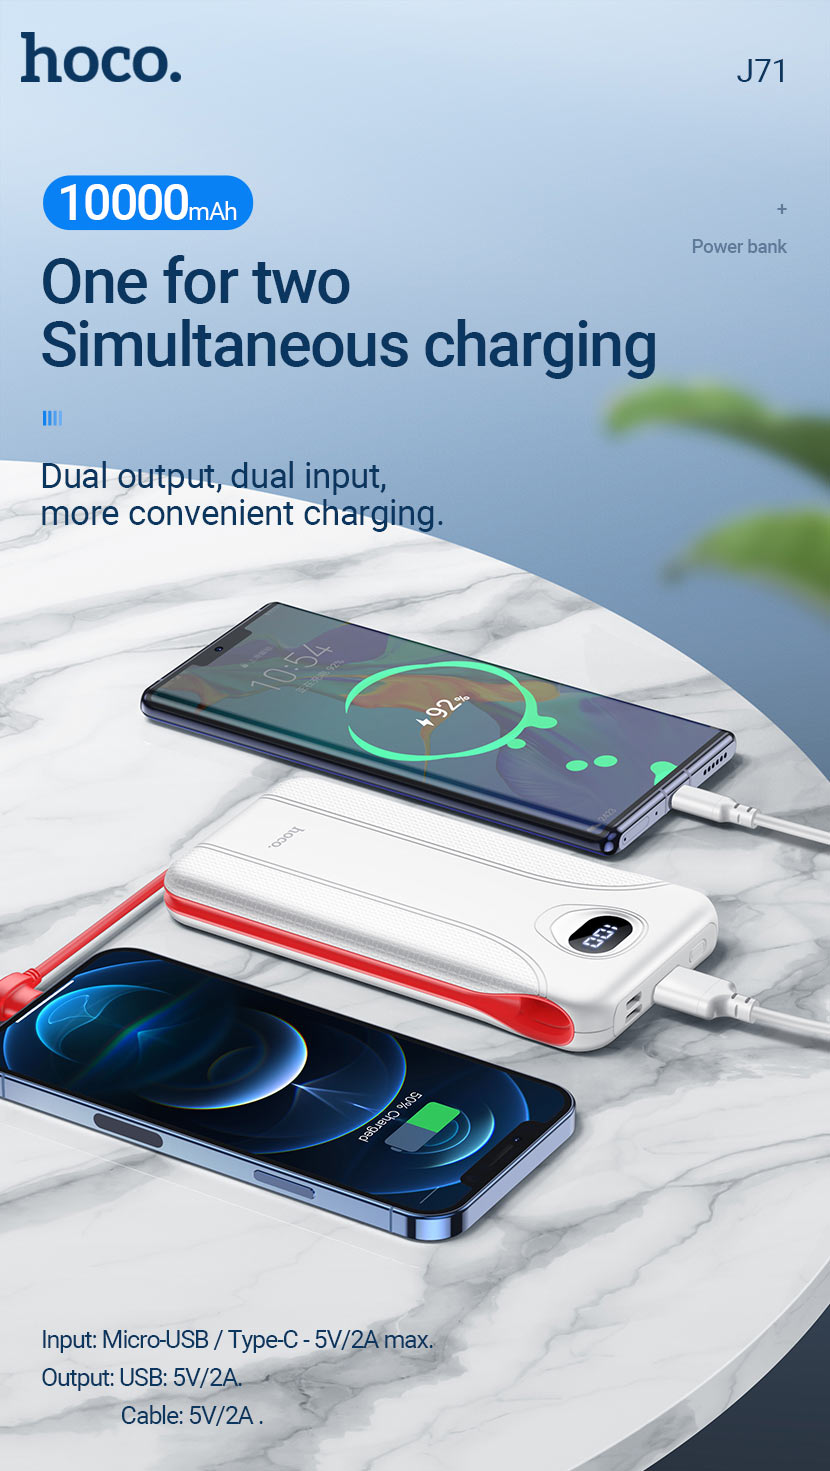 hoco news j71 borealis power bank 10000mah charging en